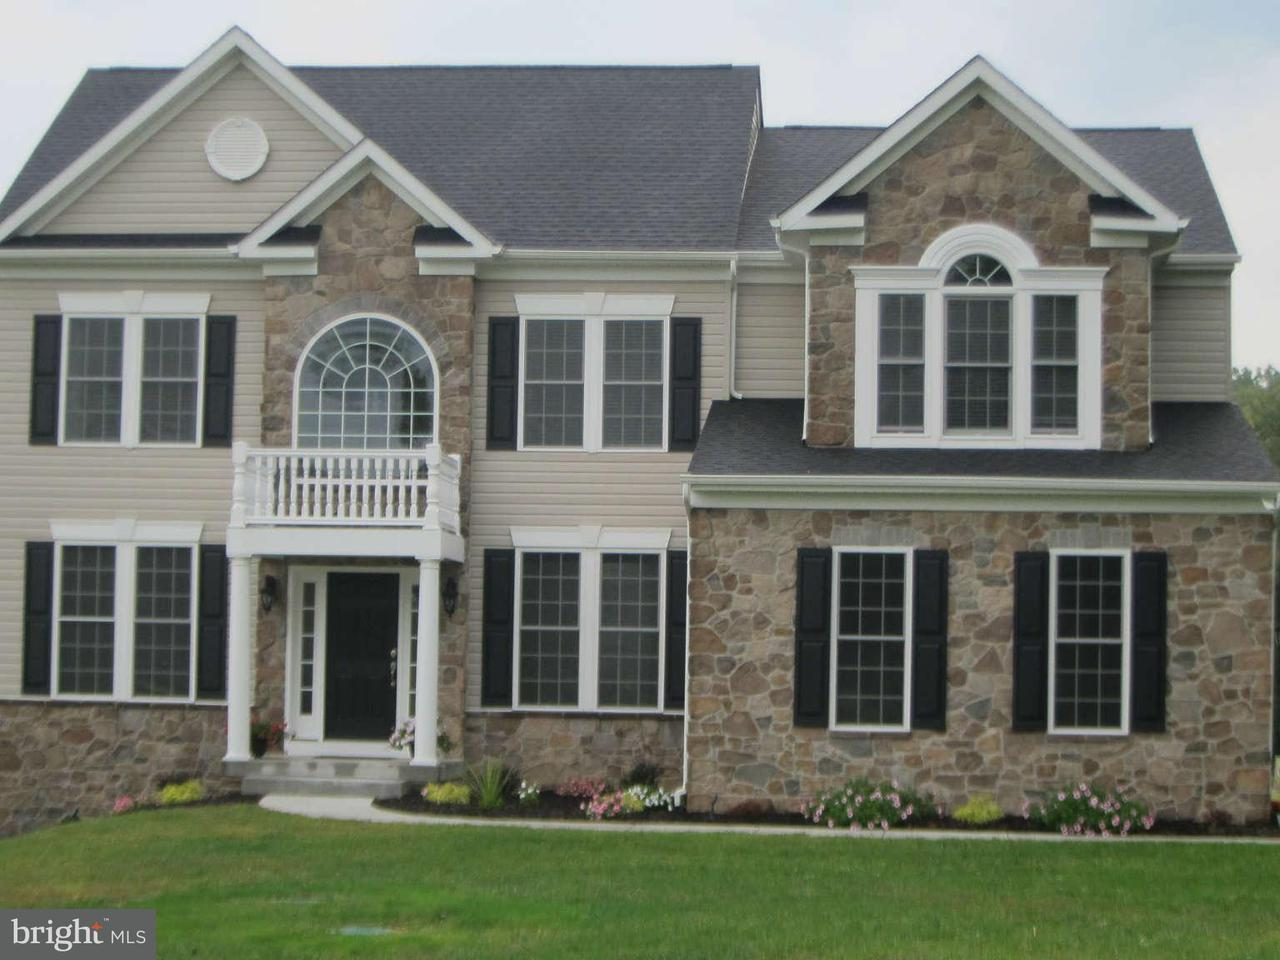 Single Family Home for Sale at 2296M WALNUT SPRINGS Court 2296M WALNUT SPRINGS Court White Hall, Maryland 21161 United States